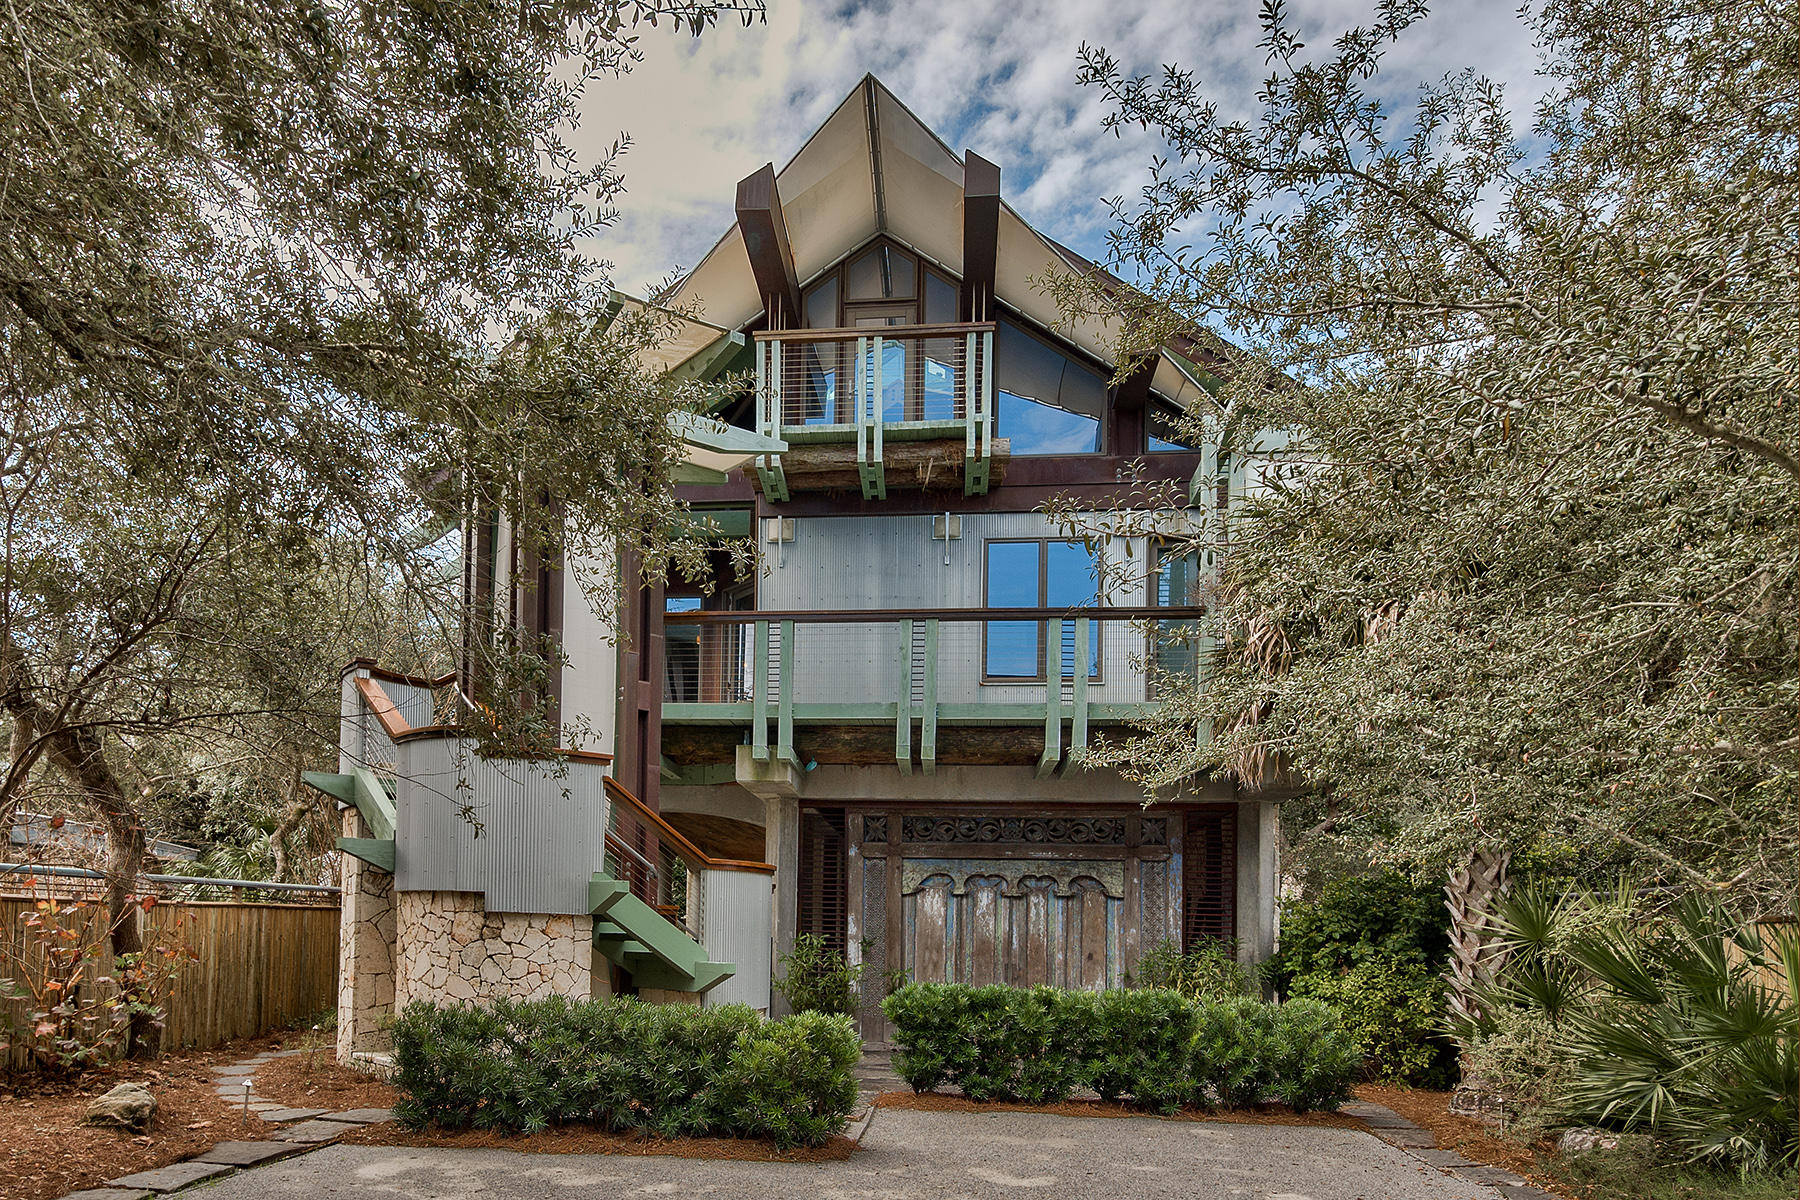 Single Family Home for Sale at ONE OF A KIND ARCHITECTURAL MASTERPIECE 52 Banfill Street Santa Rosa Beach, Florida, 32459 United States